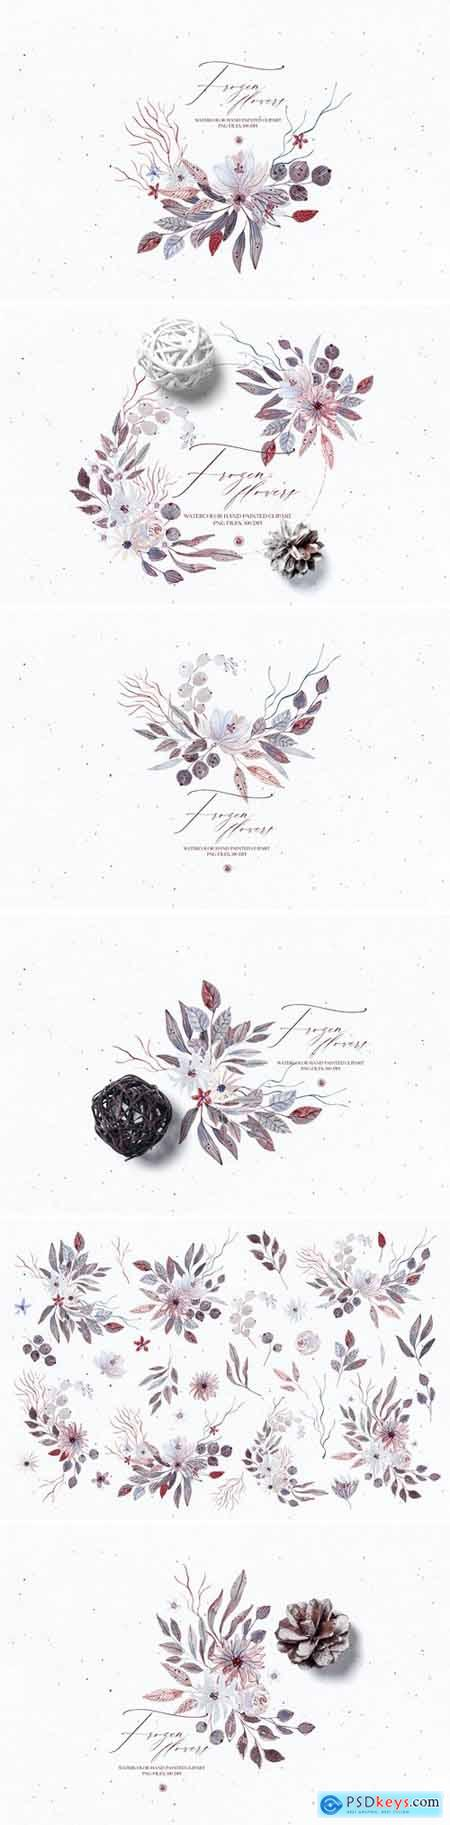 Watercolor floral set - Frozen Flowers